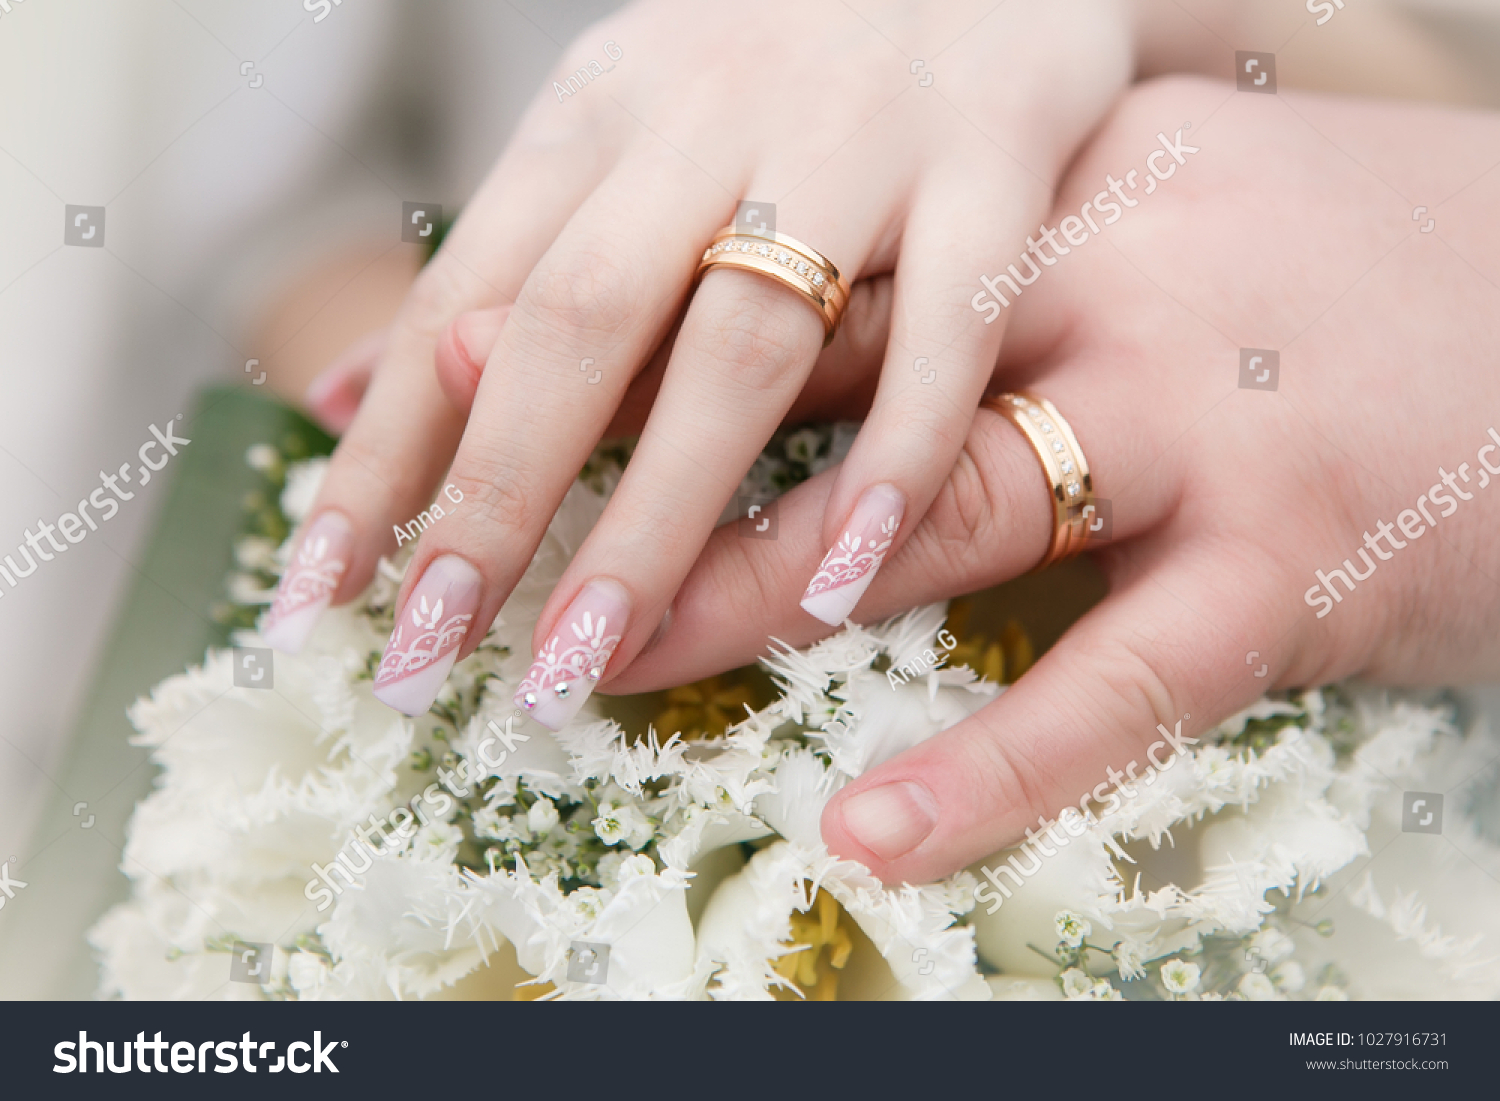 Bouquet of white tulips, hands of groom and bride with gold wedding ...